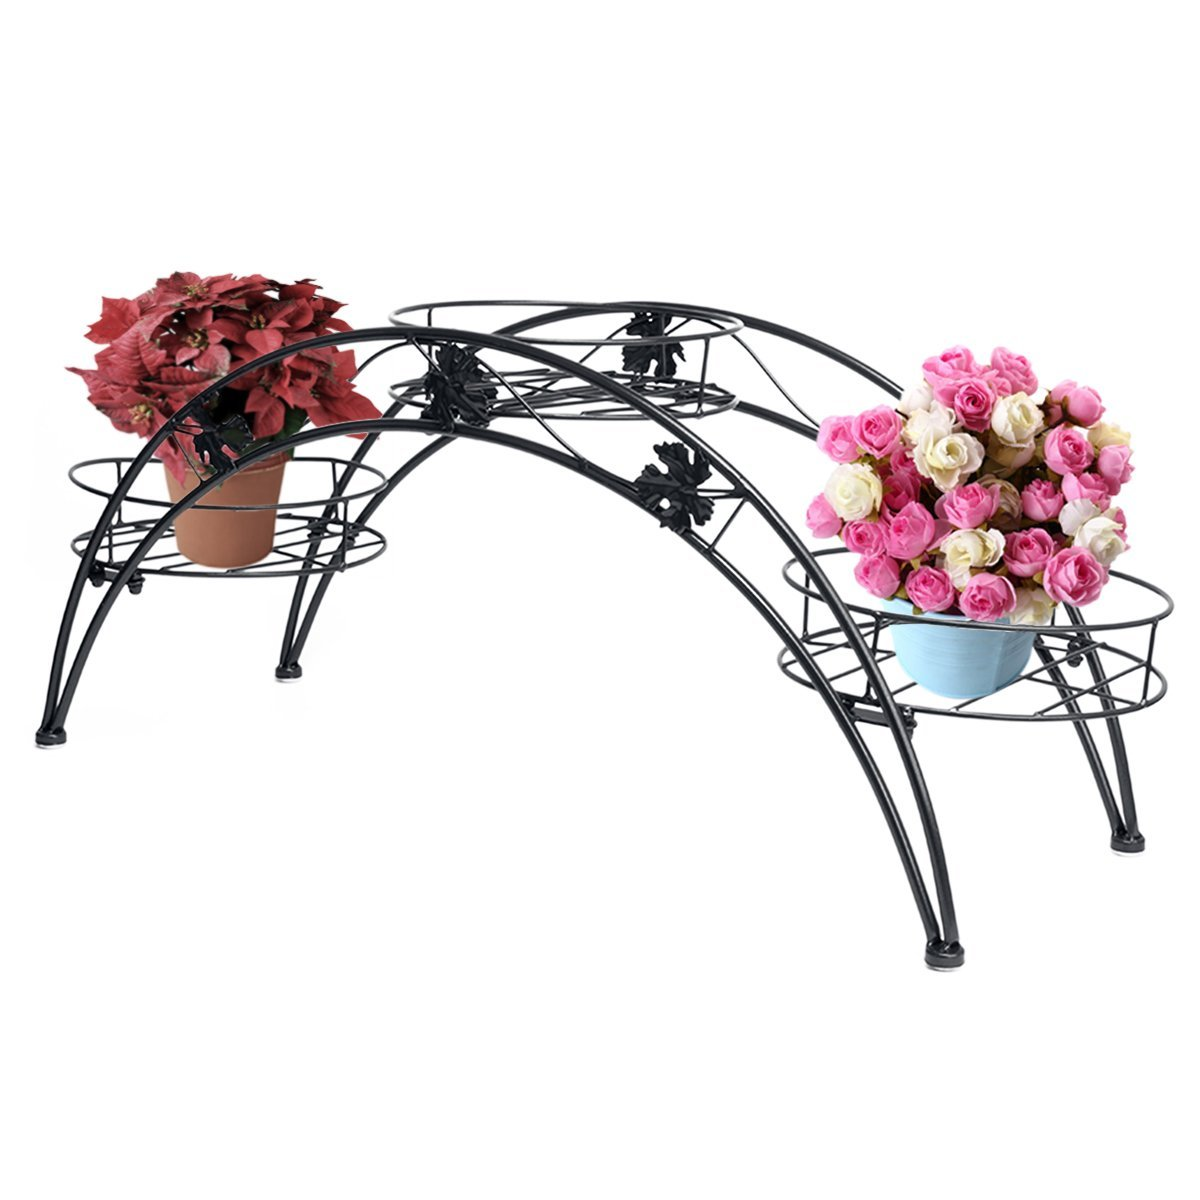 Dazone Metal-made Arched Design Potted Plant Rack with 3 Holders Plant Stand (black)